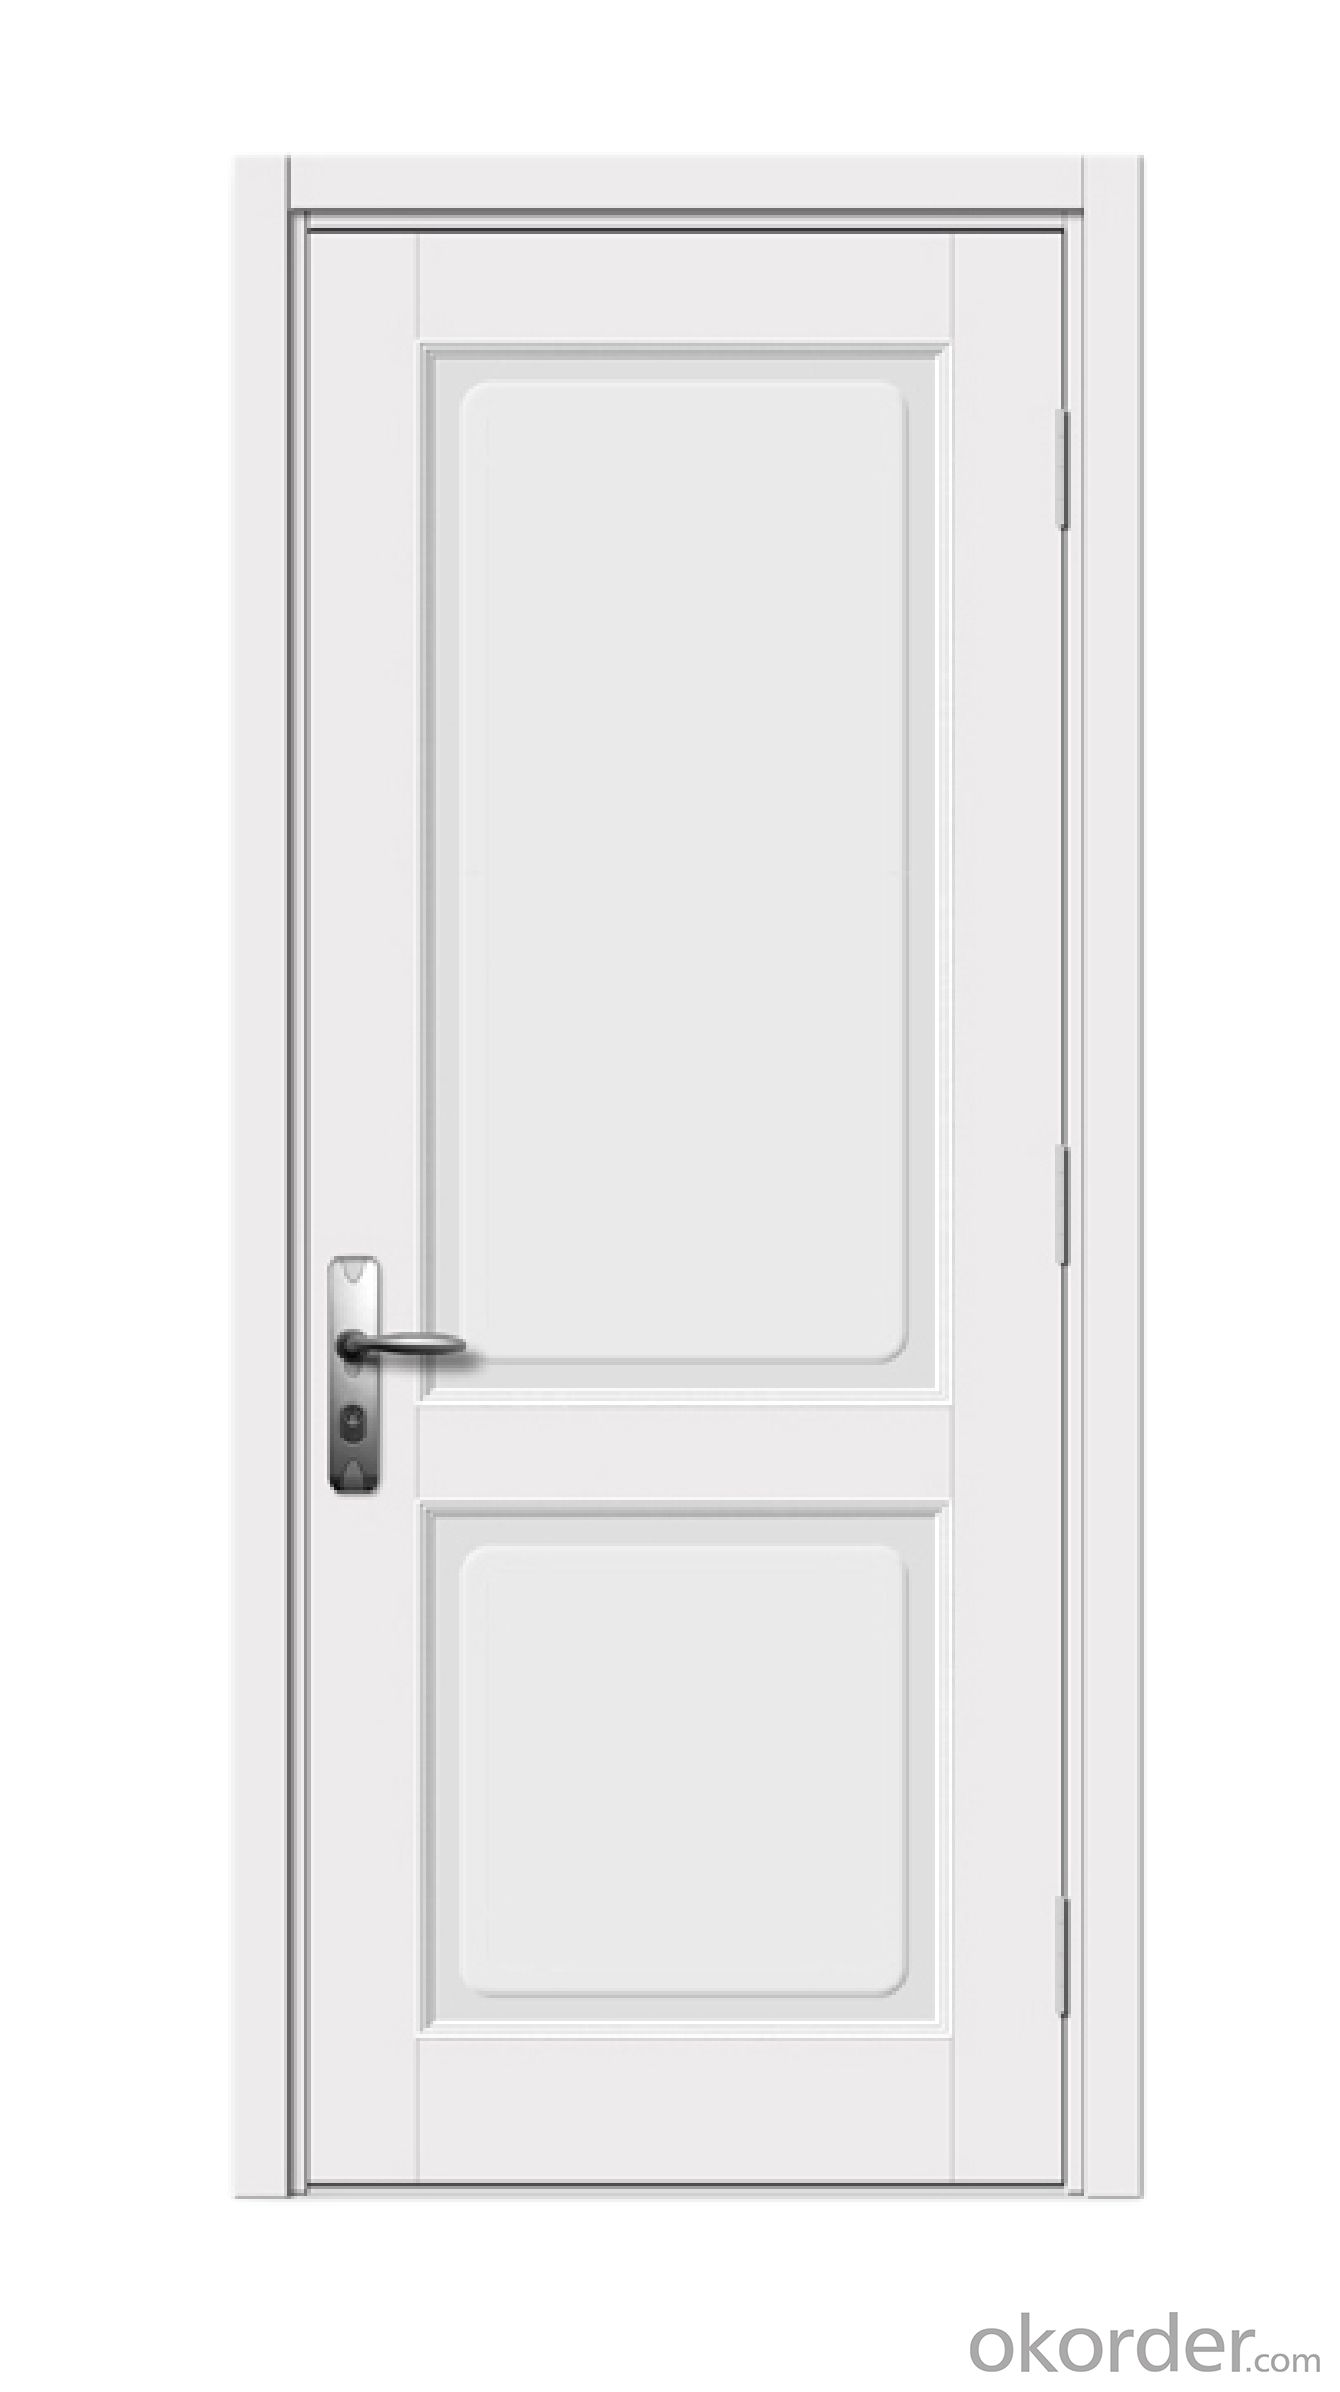 2012 HOT Good Quality Security Steel Door